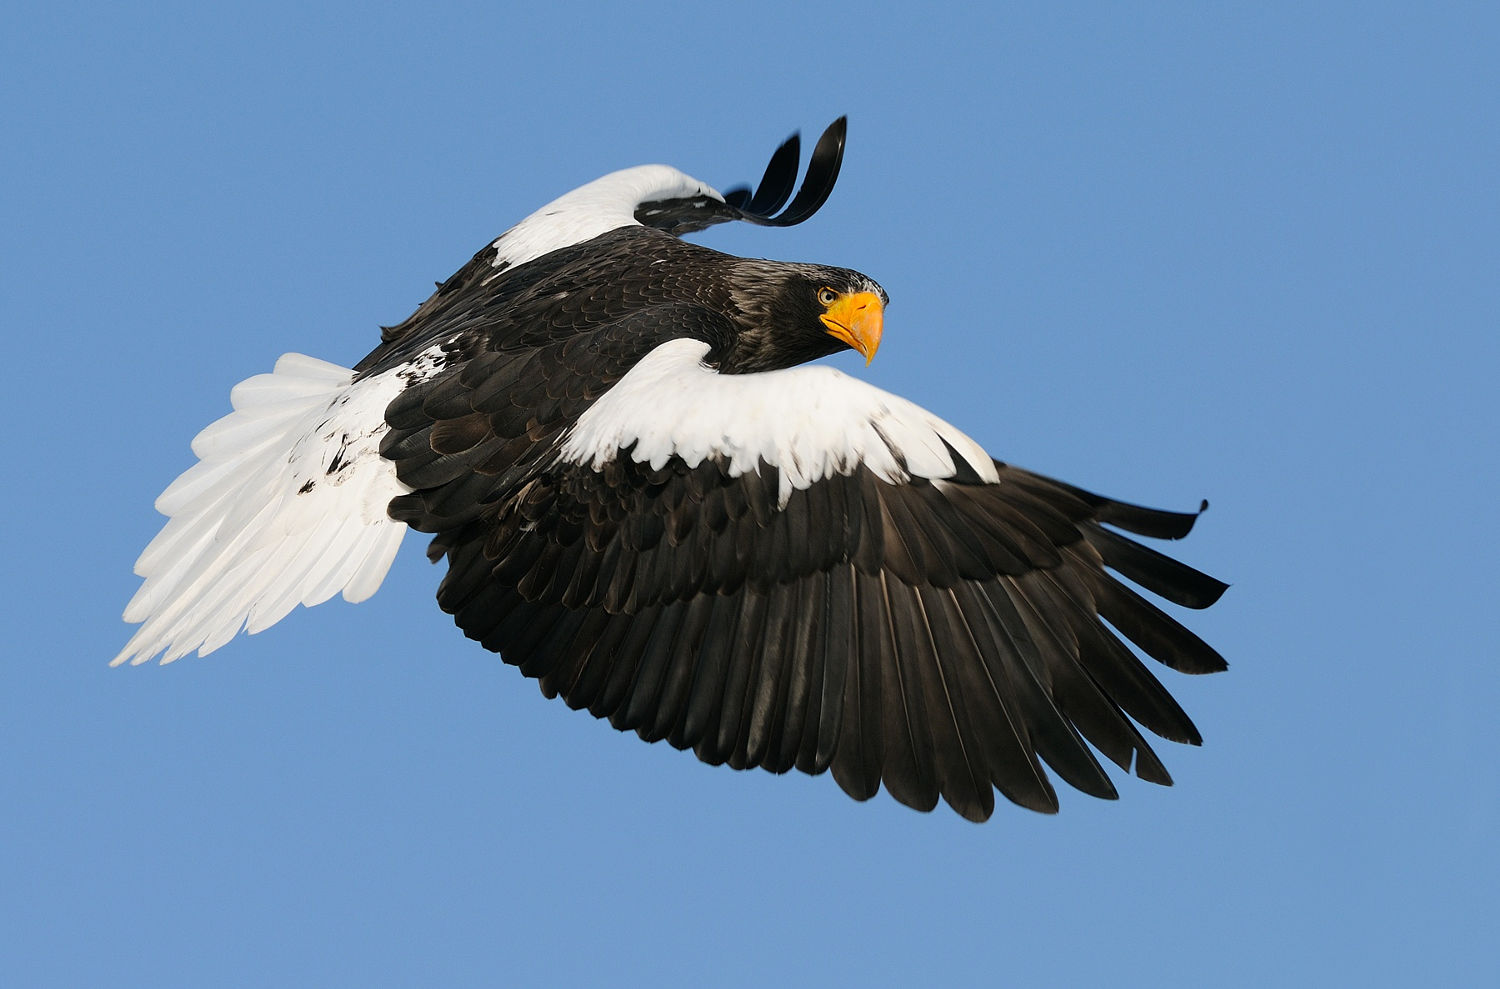 Drawn steller's sea eagle eagle eye Pygargue de Steller Steller